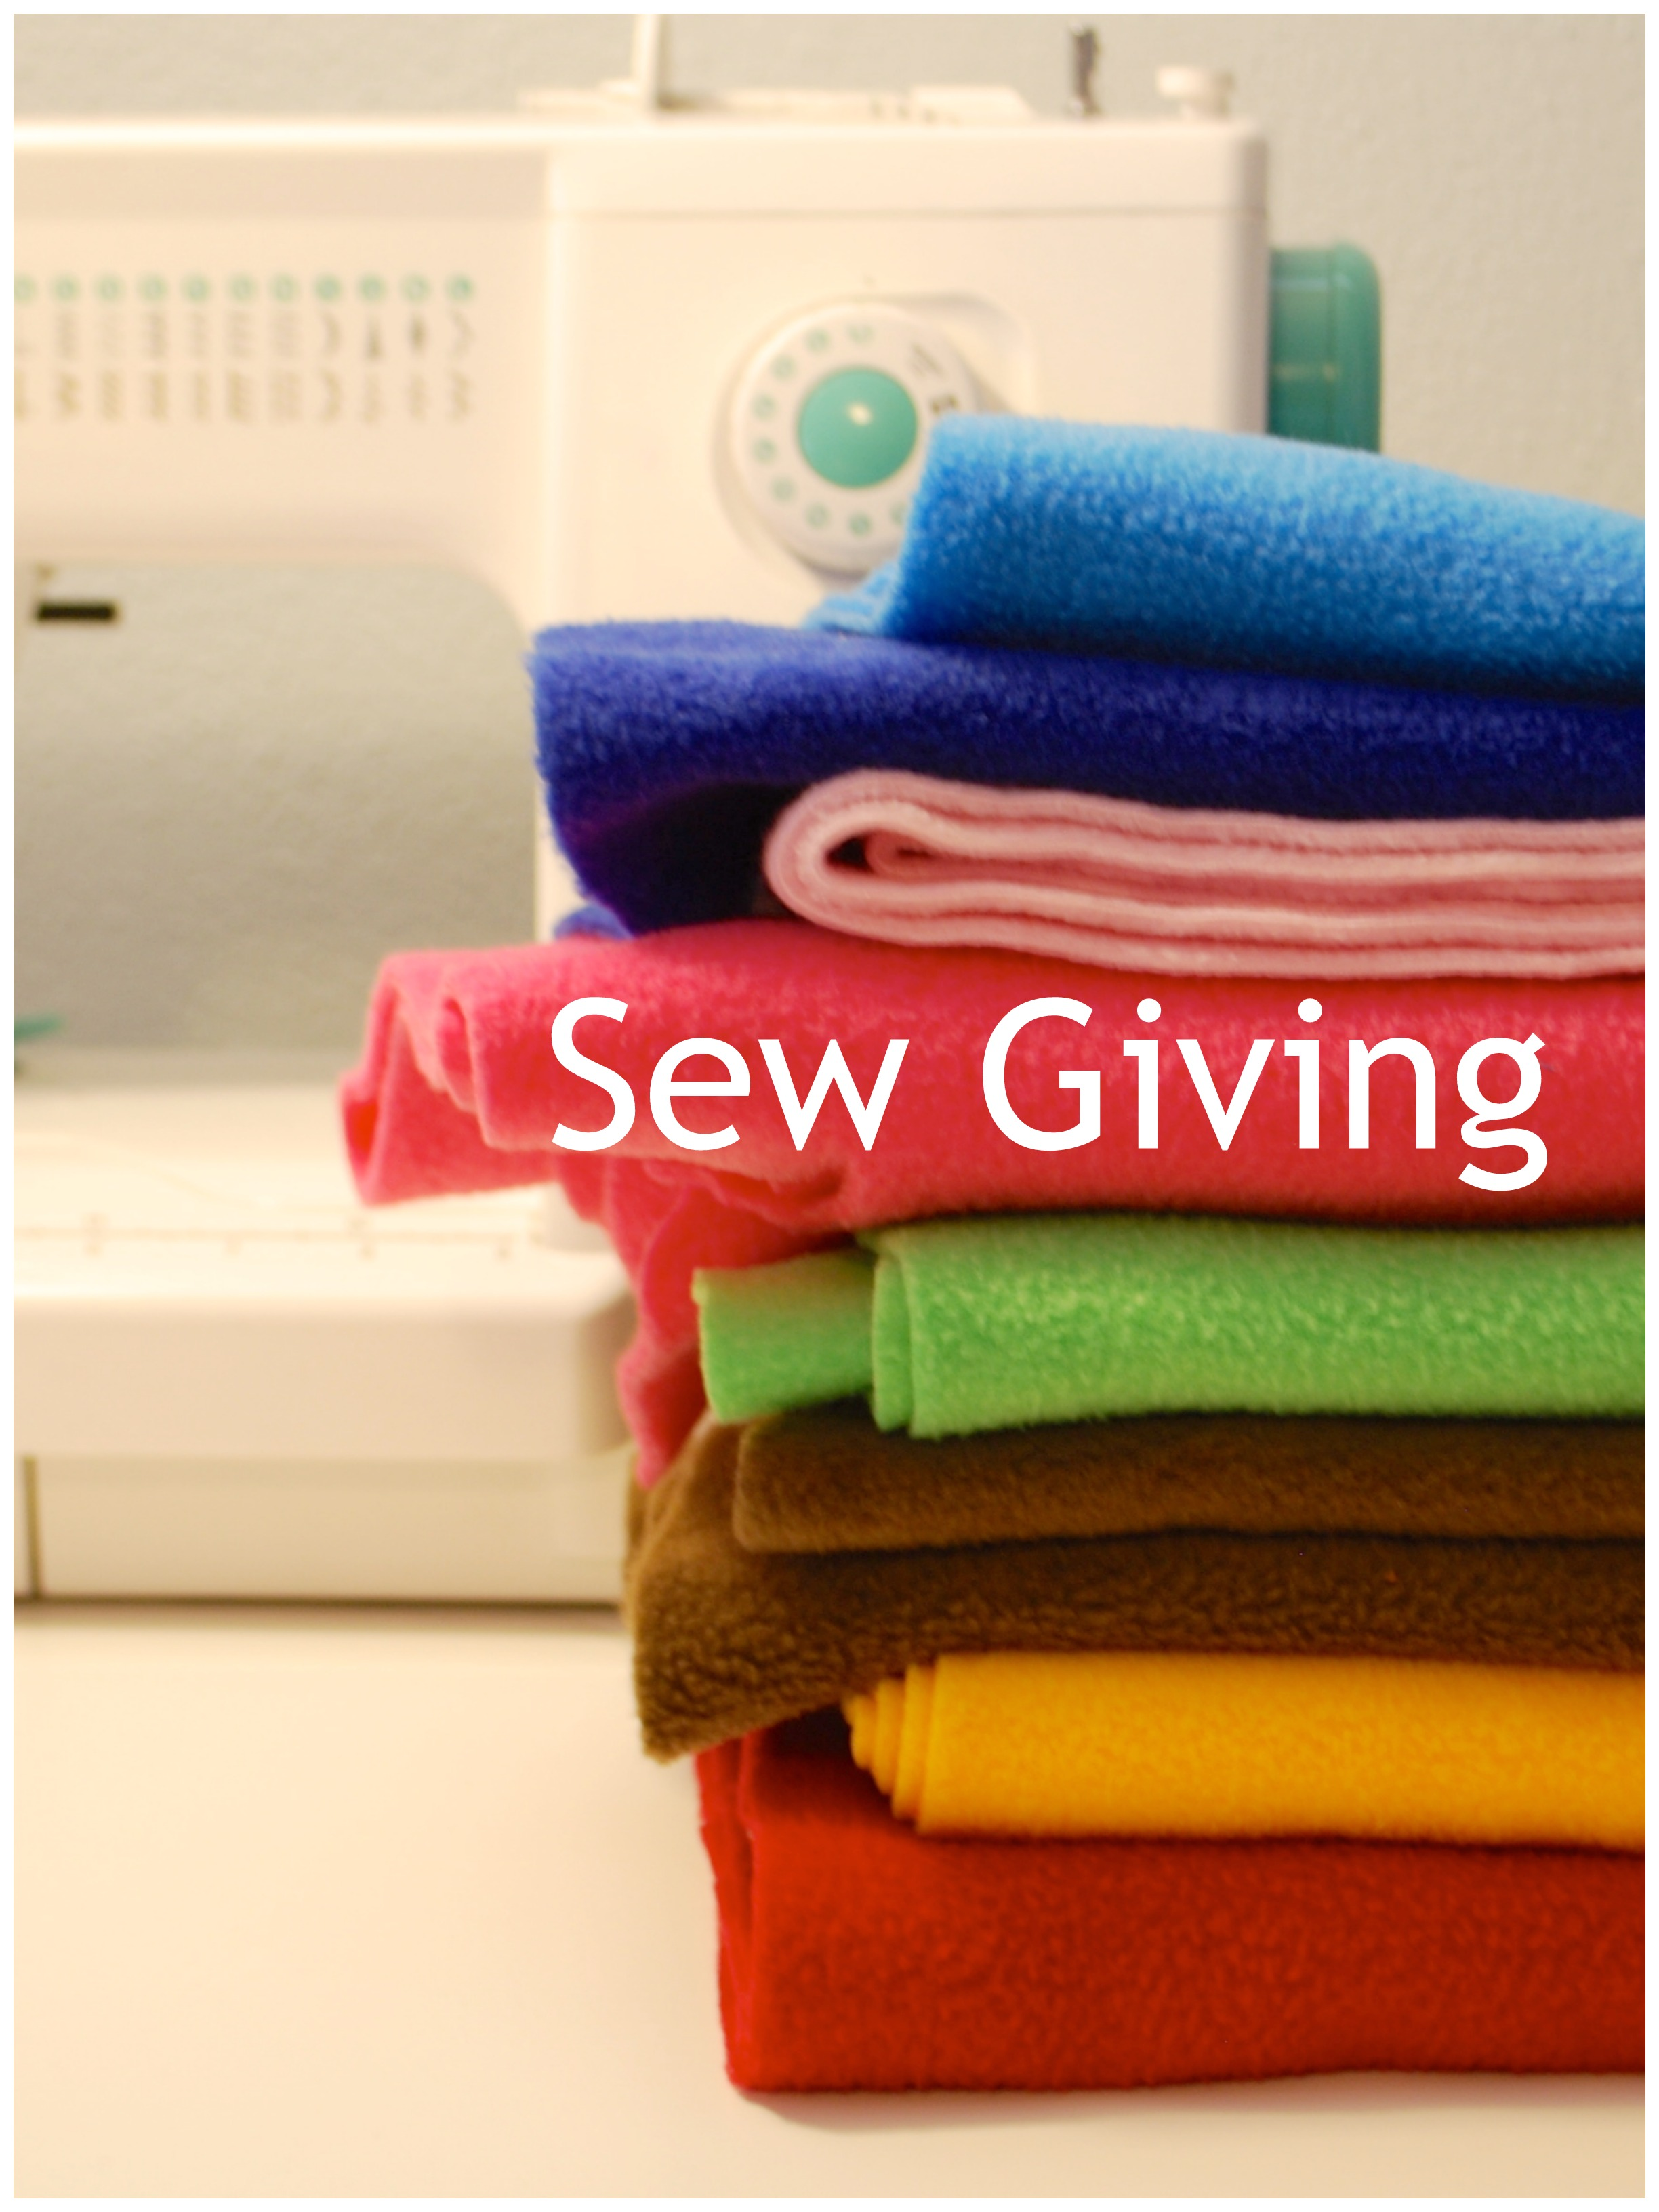 Sew You Studio | Sew Giving Event for August 2014